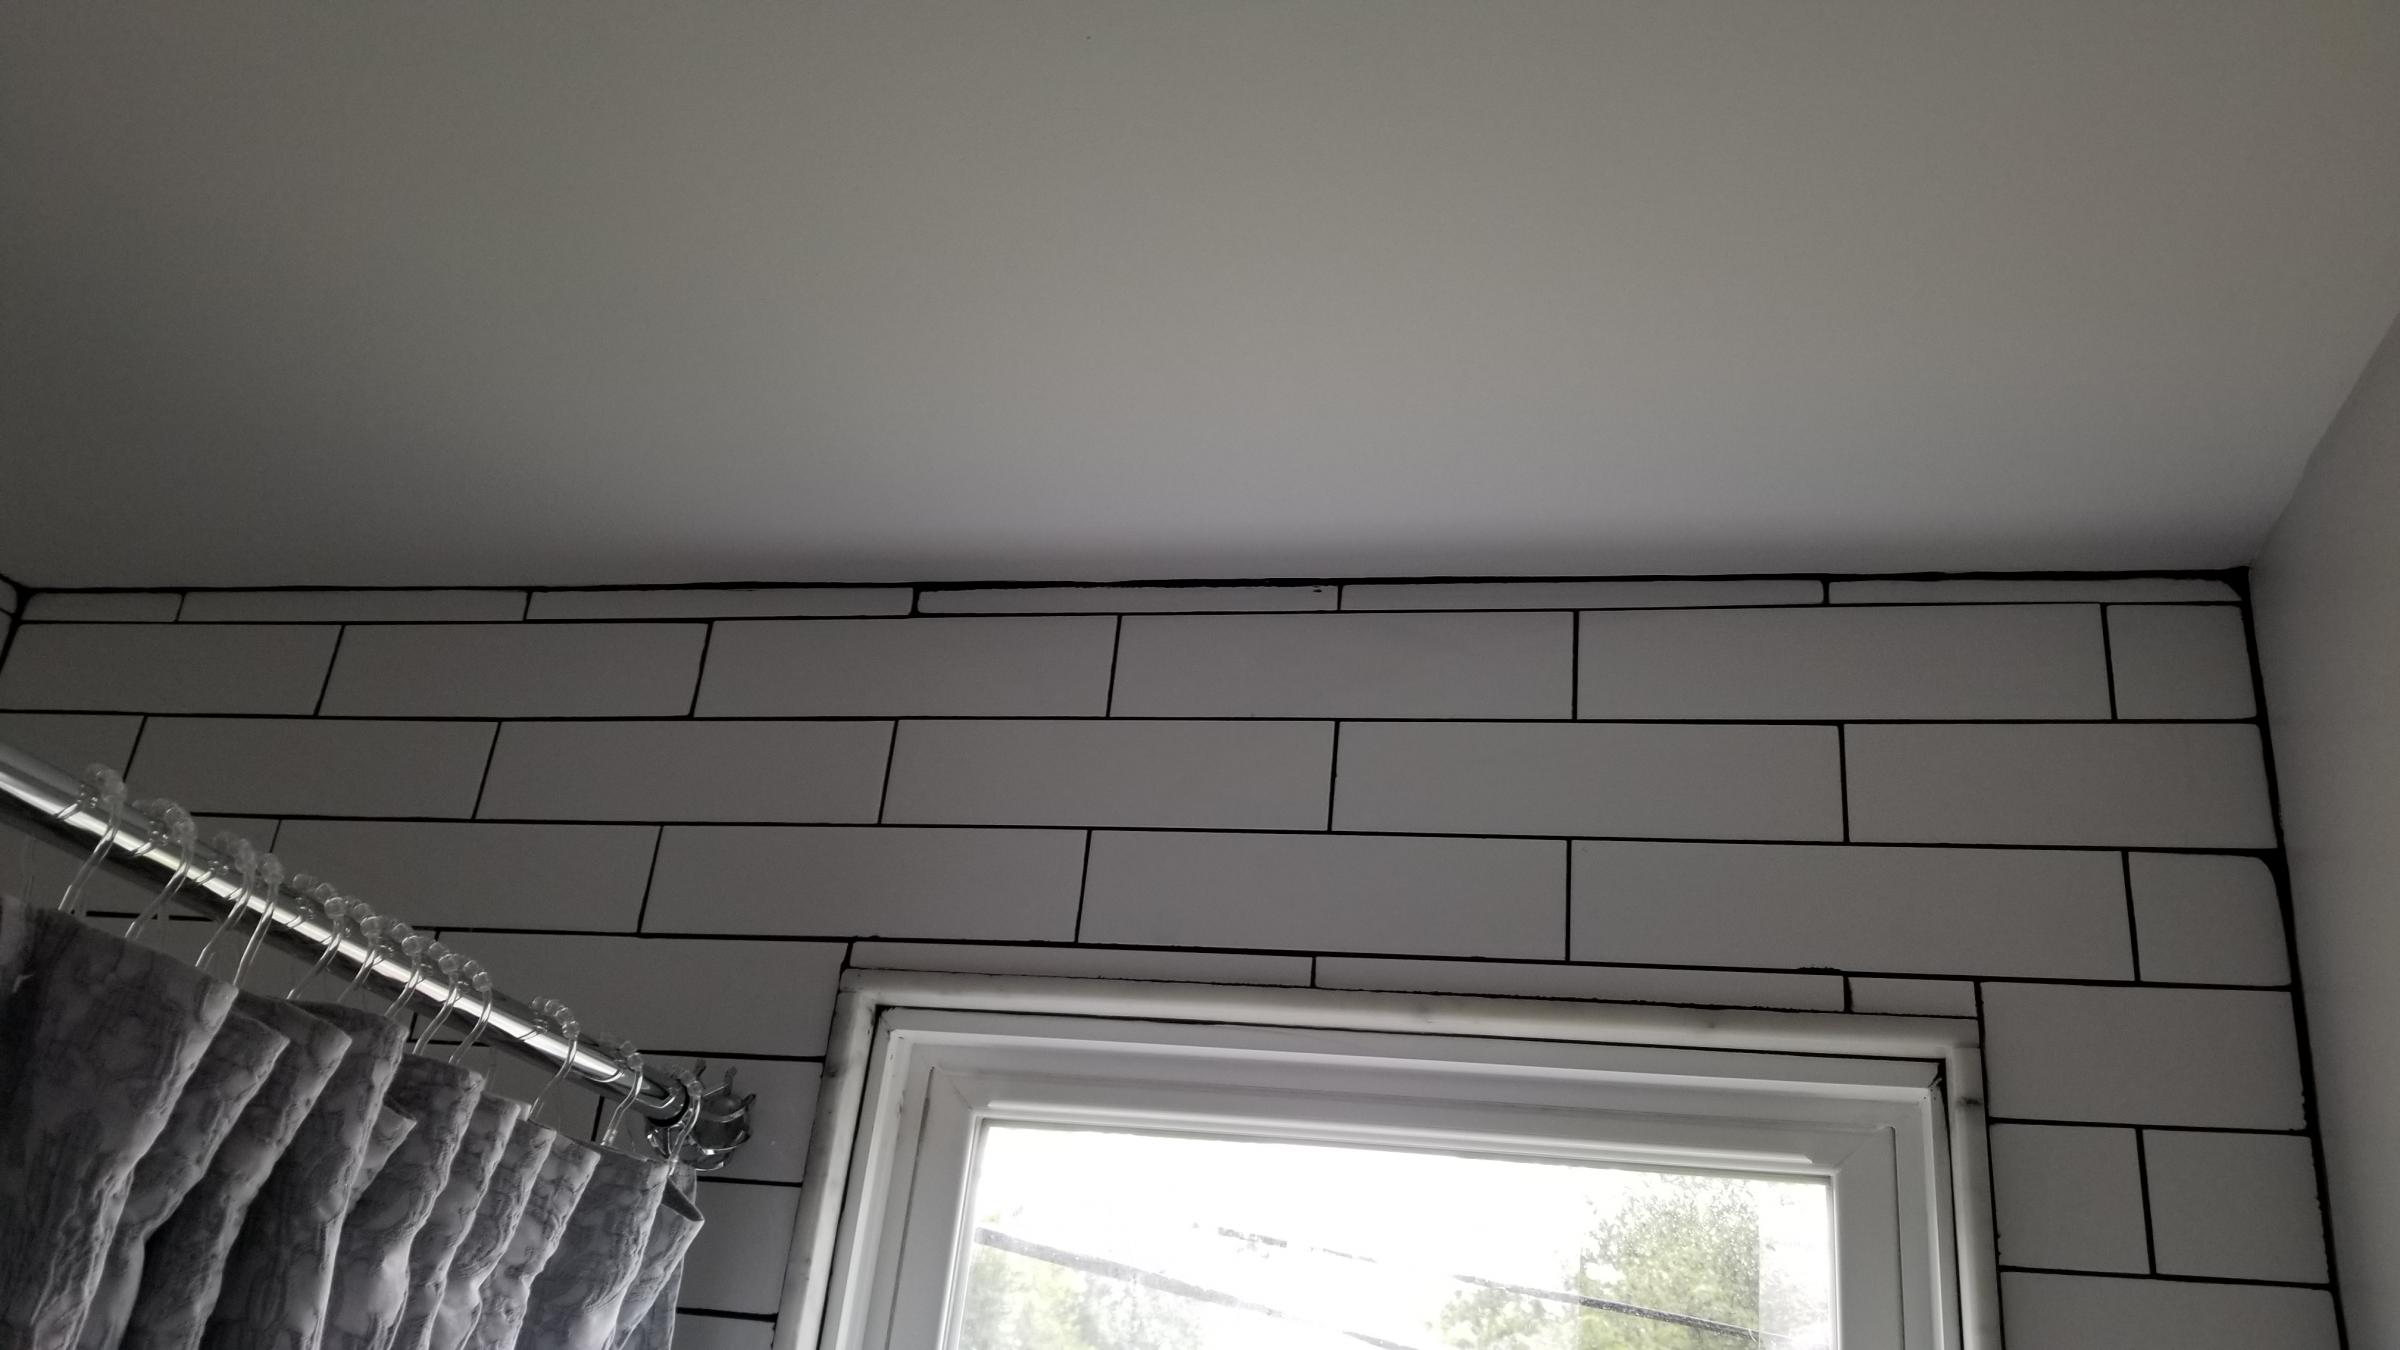 Bad tiling and grout job-20190813_150654_1565725573208.jpg